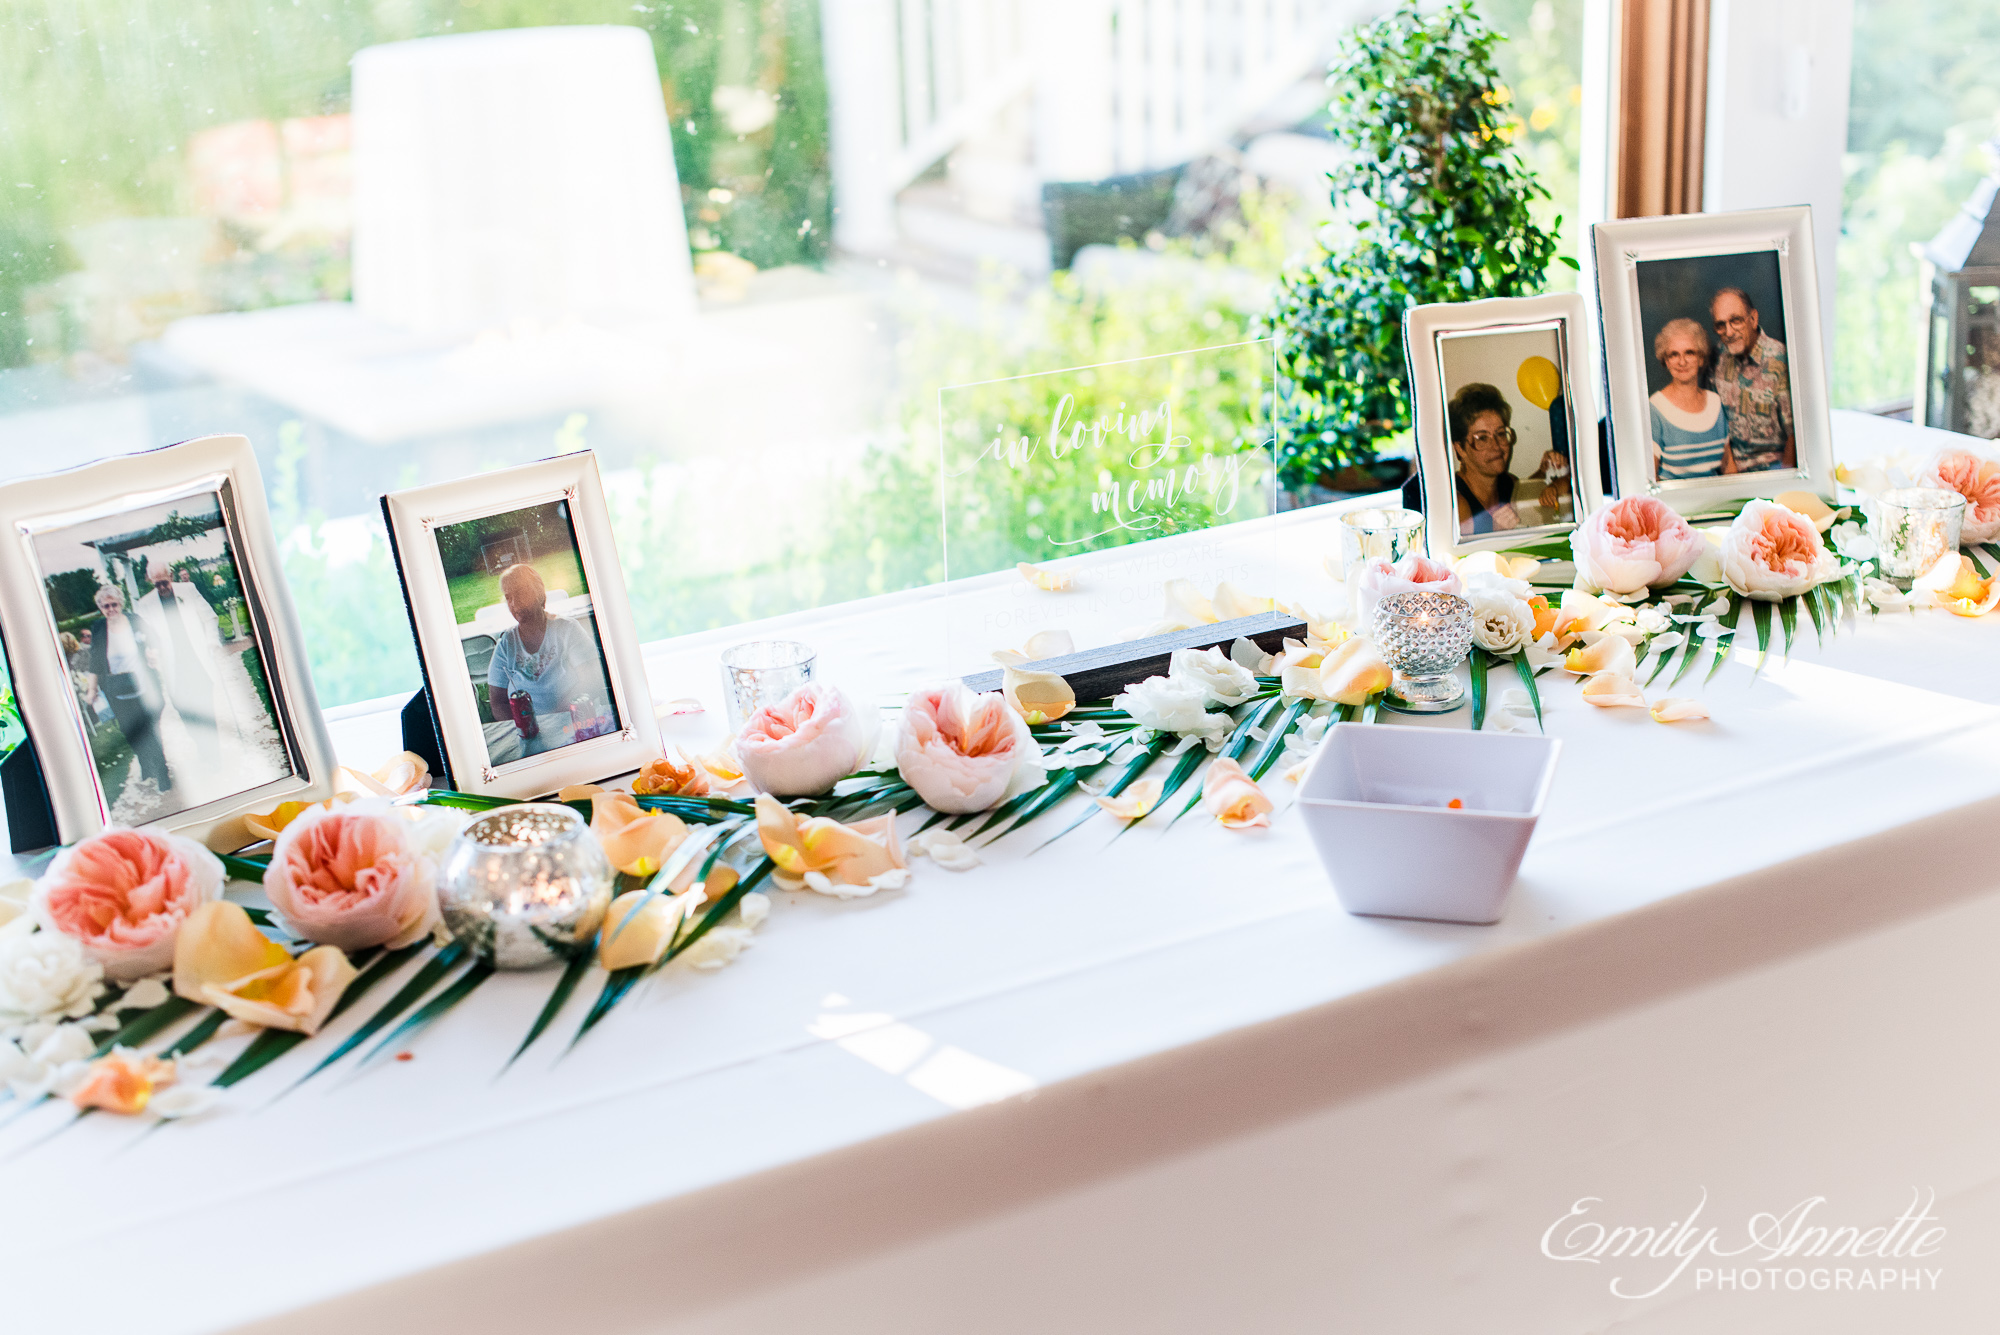 A table set with tropical flowers and framed photos of deceased loved ones at a wedding reception at Herrington on the Bay in North Beach, Maryland